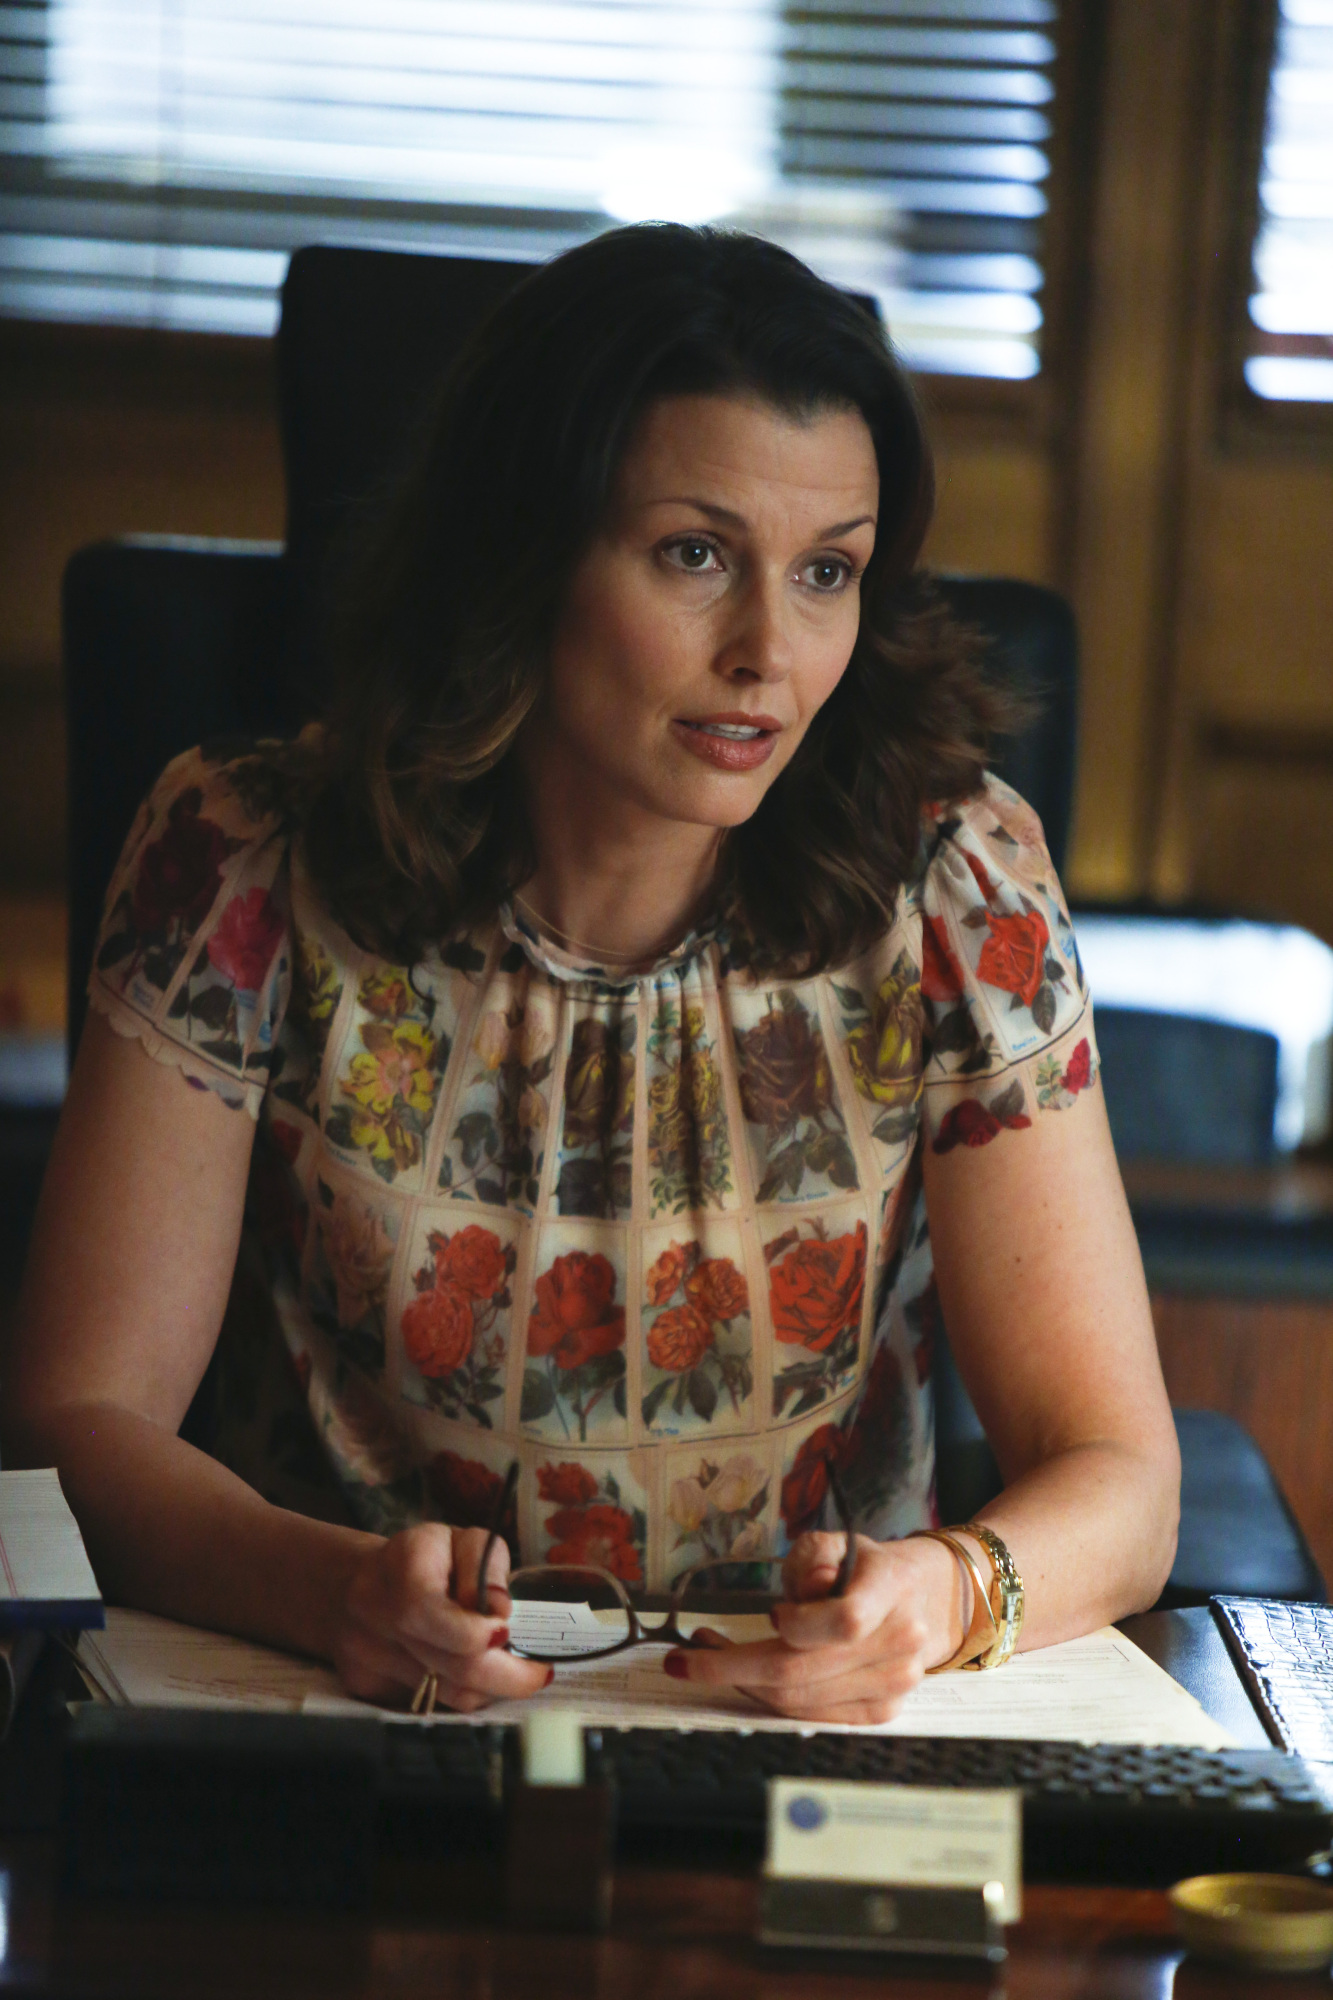 22. Bridget Moynahan has appeared in numerous blockbusters including: